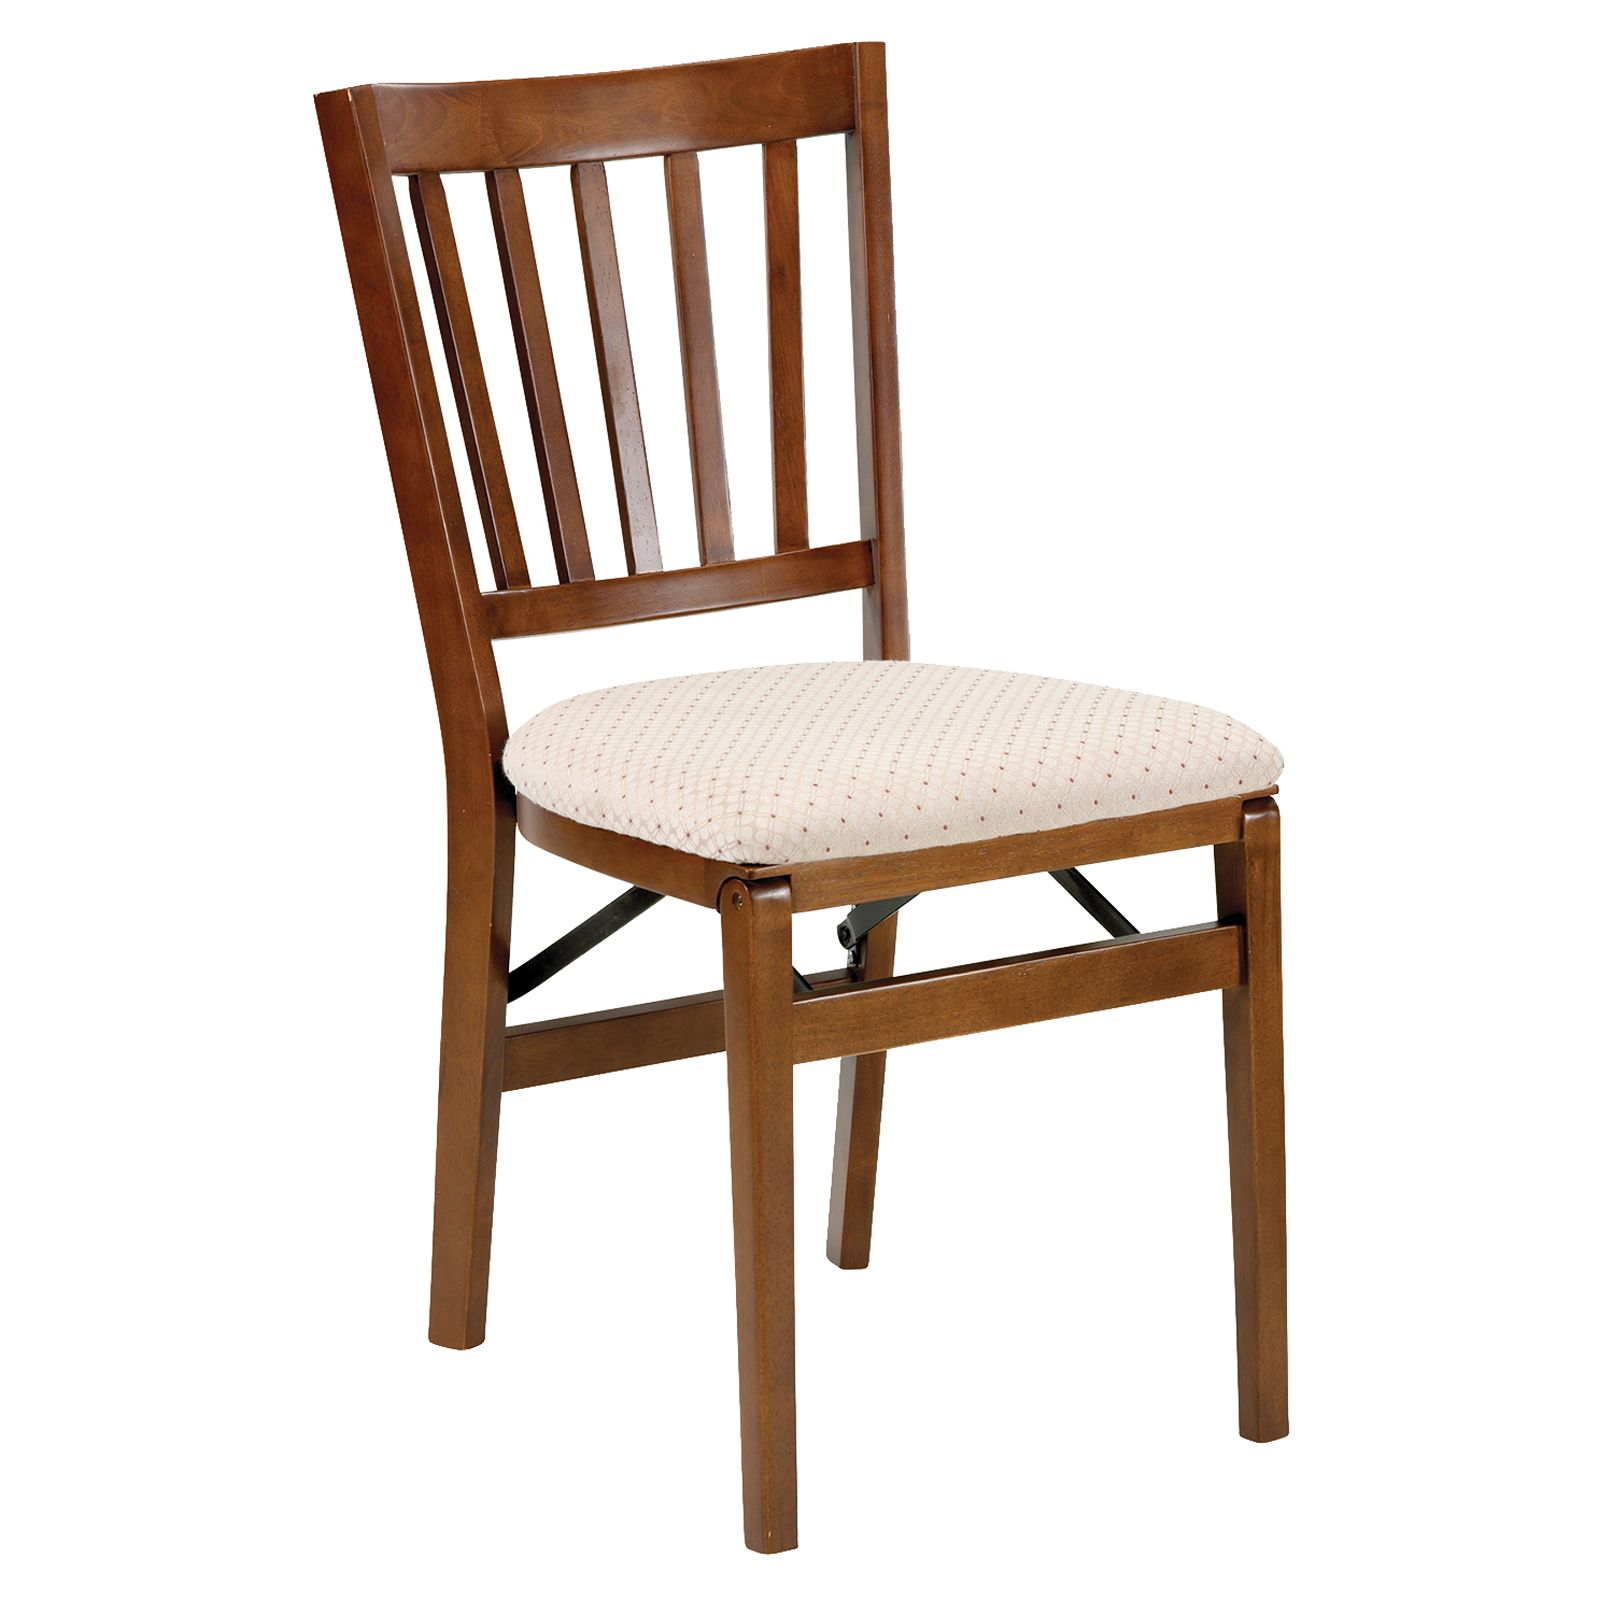 Types Of Dining Chairs 10 Beautiful Designs Learn More Dining Chairs For Sale Folding Dining Chairs Chair Set